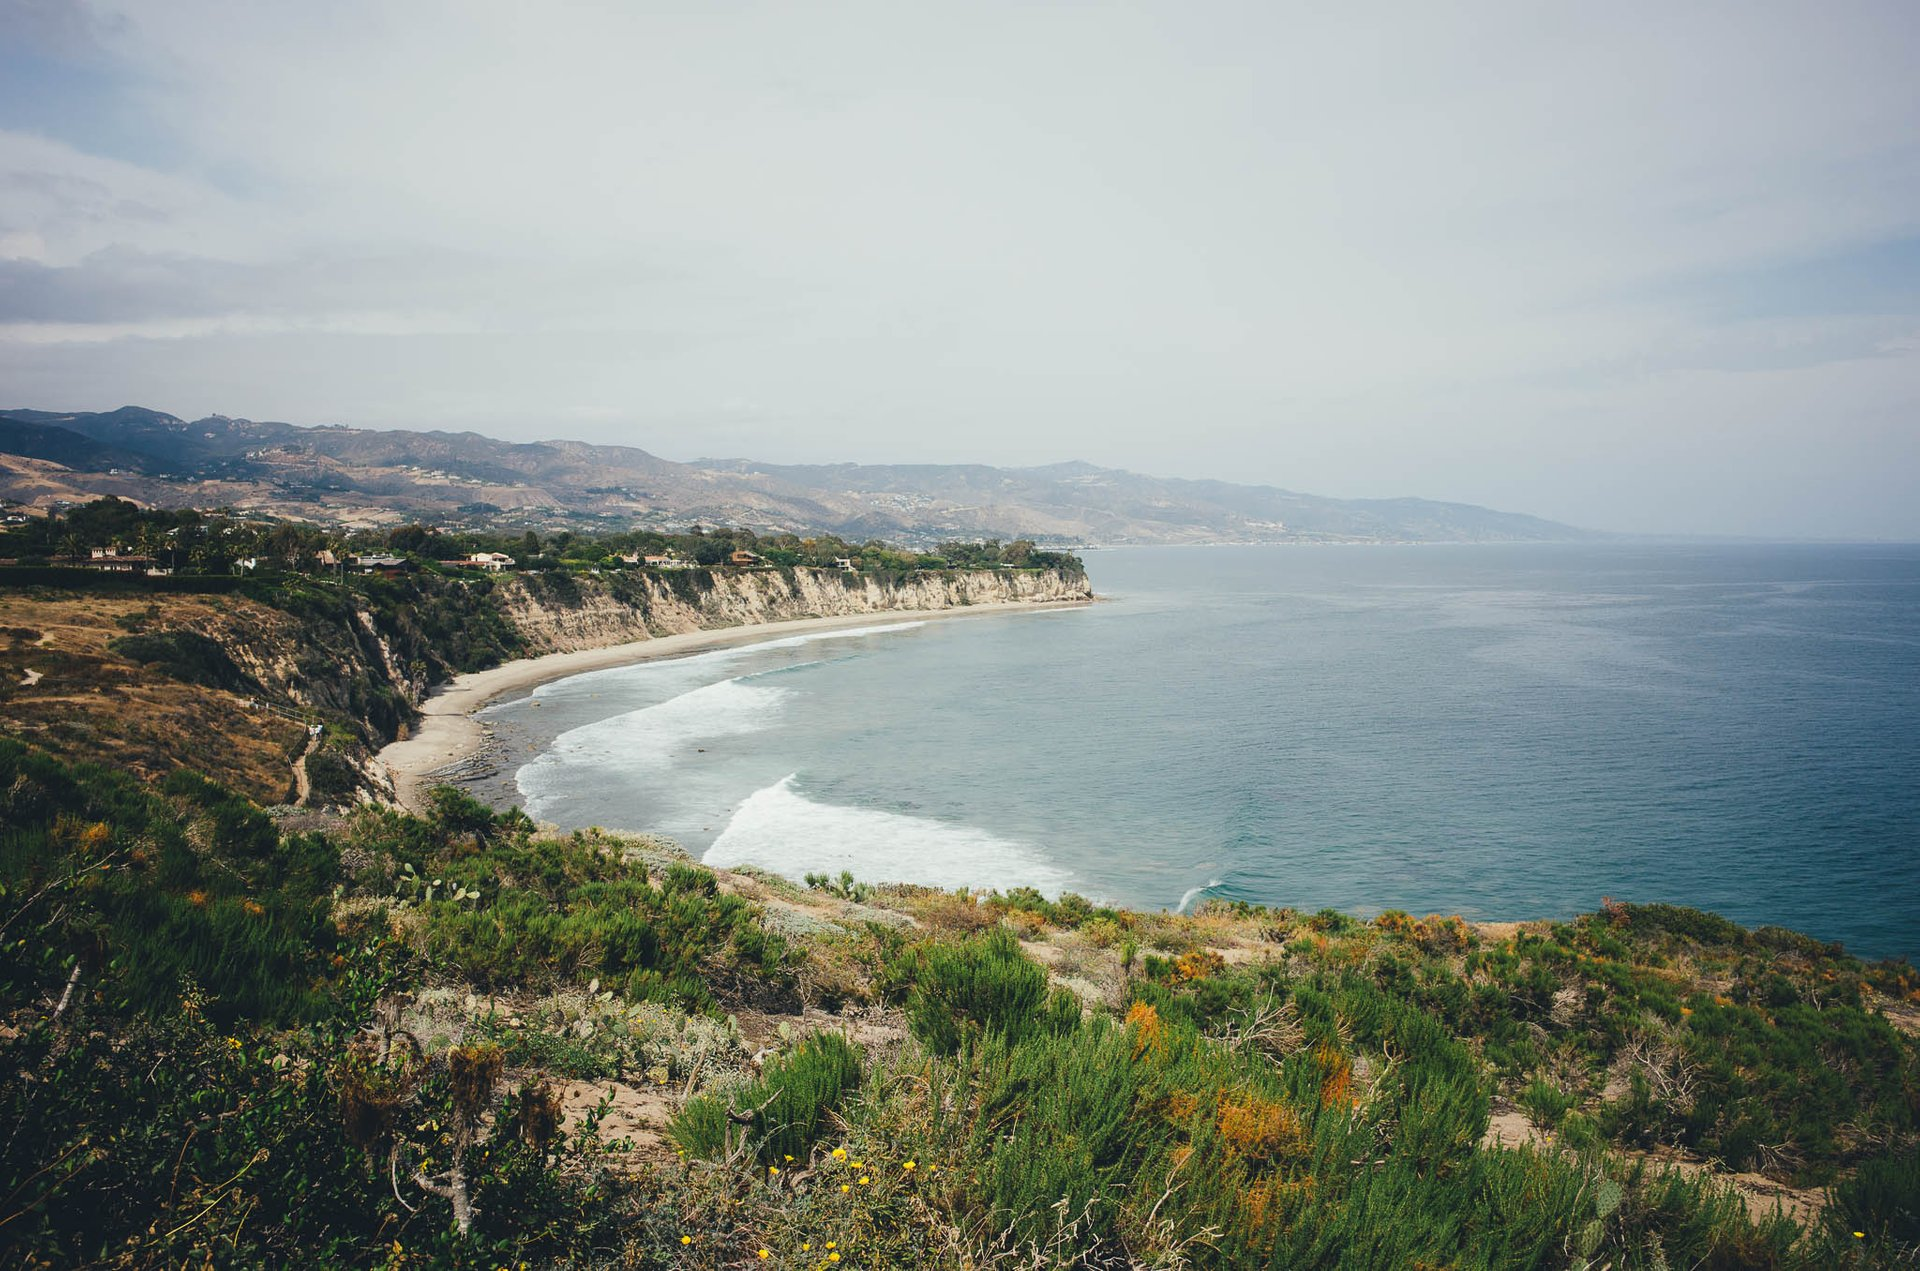 Point Dume in Los Angeles 2020 - Best Time